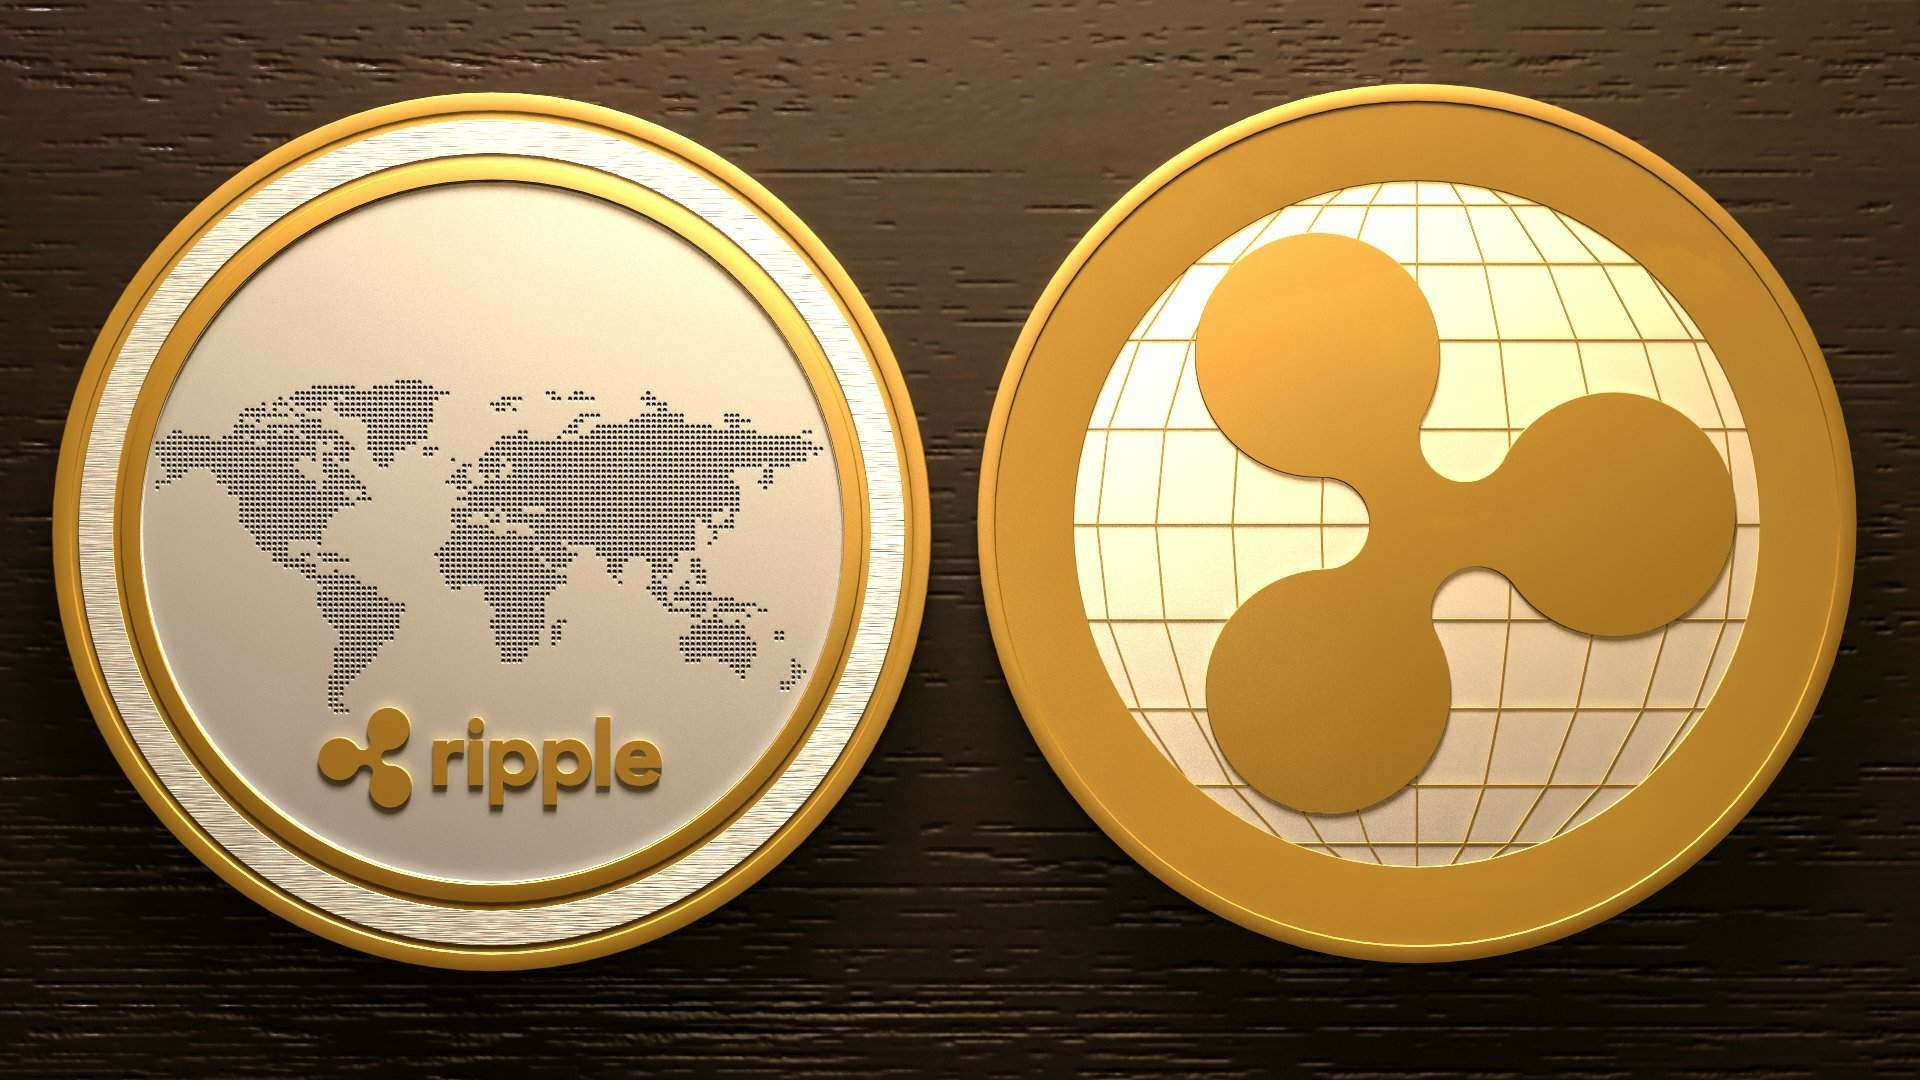 Ripple CEO Says China Leads the United States in Crypto Regulatory Perspective